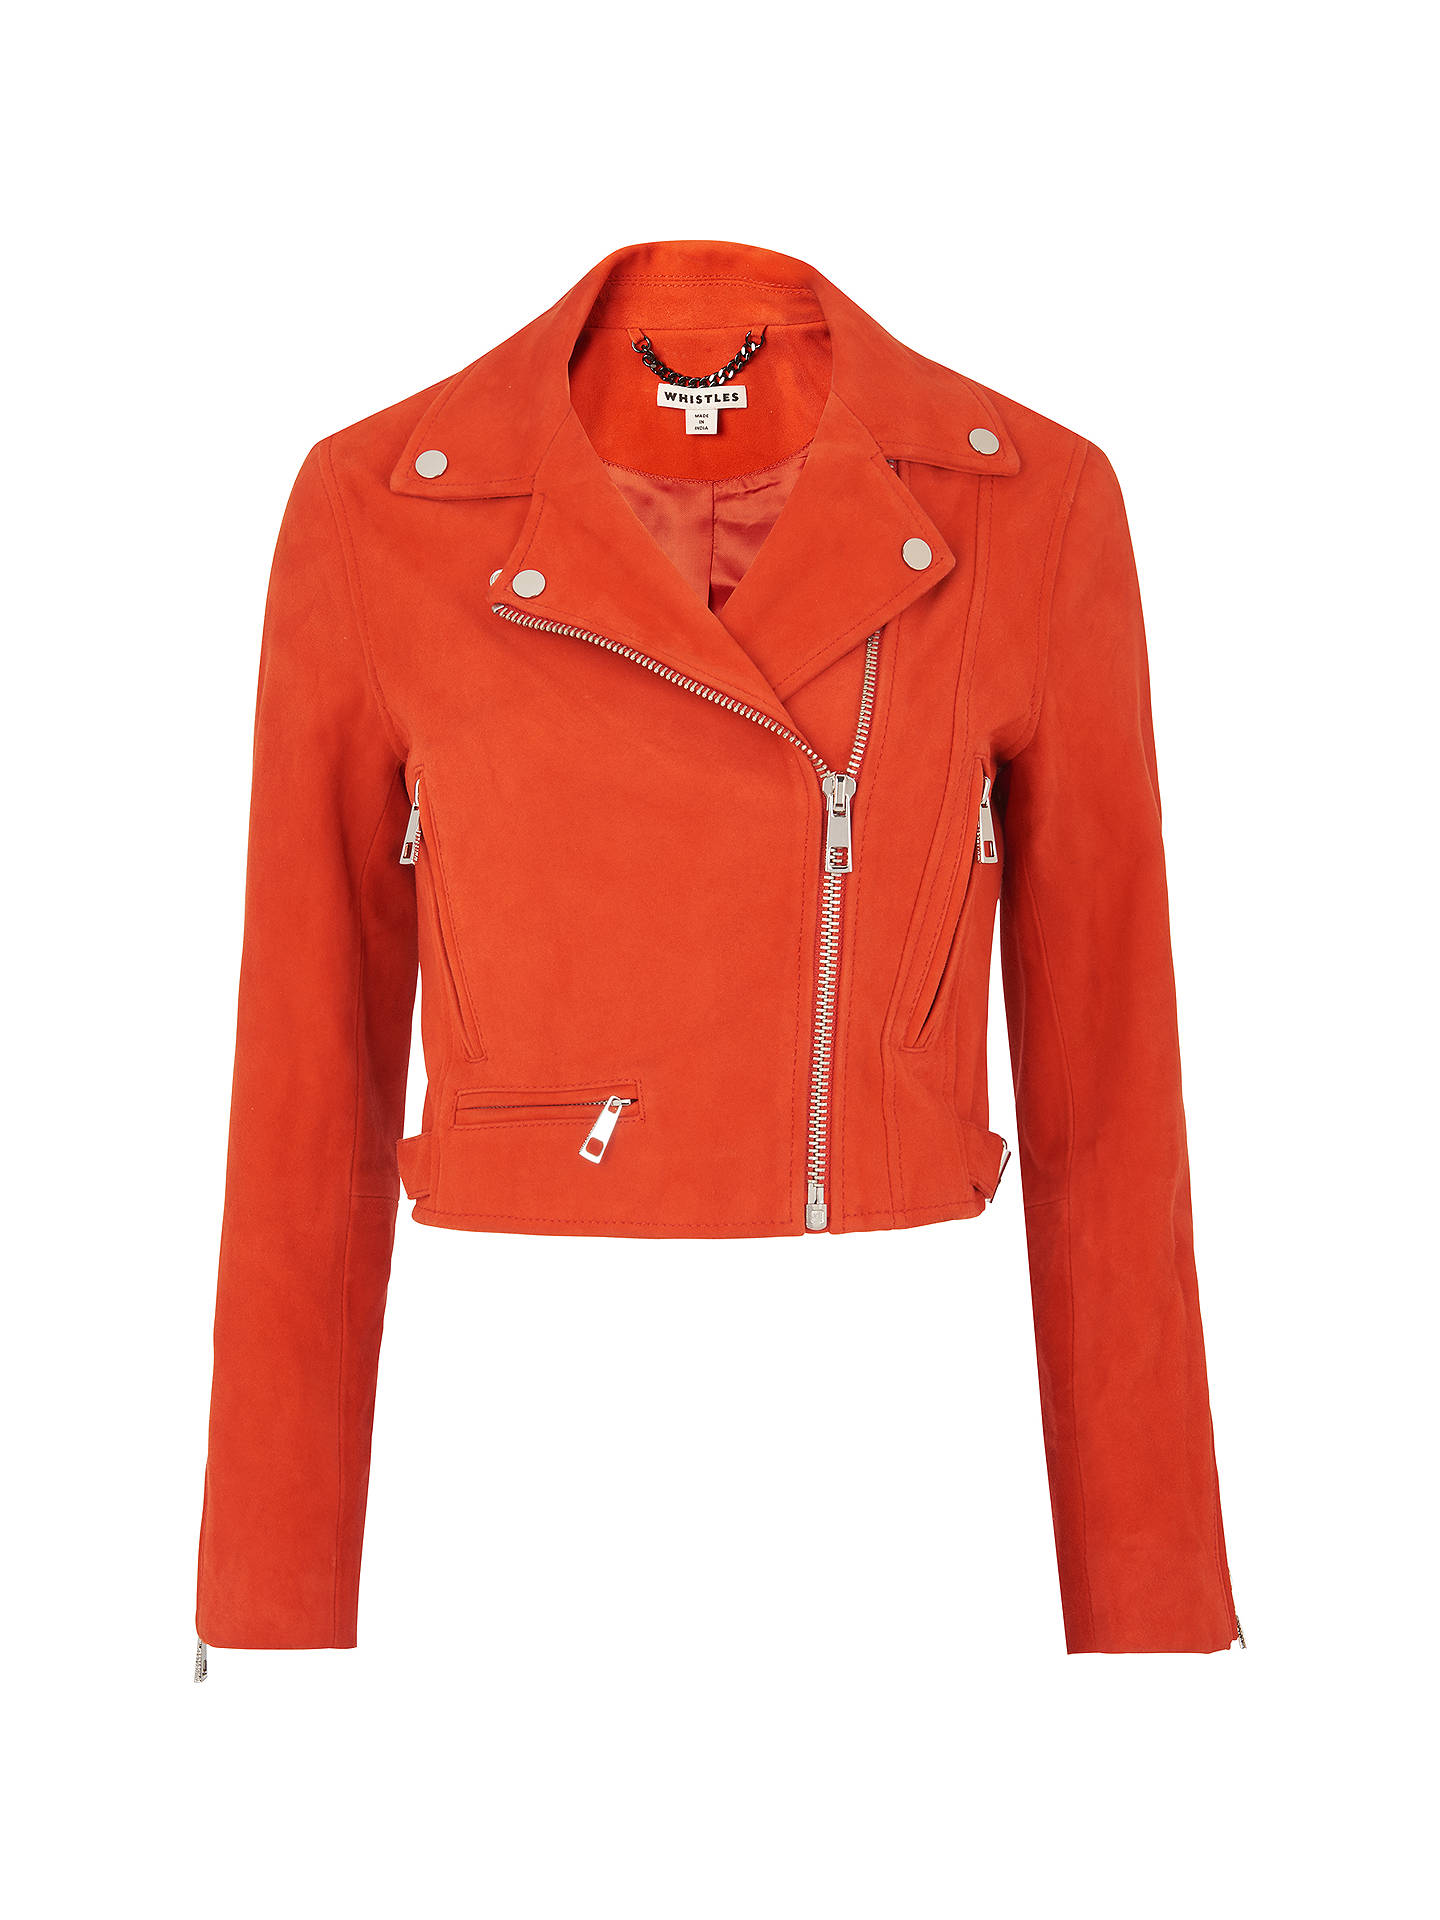 huge inventory sneakers for cheap latest collection Whistles Rose Suede Crop Jacket, Orange at John Lewis & Partners